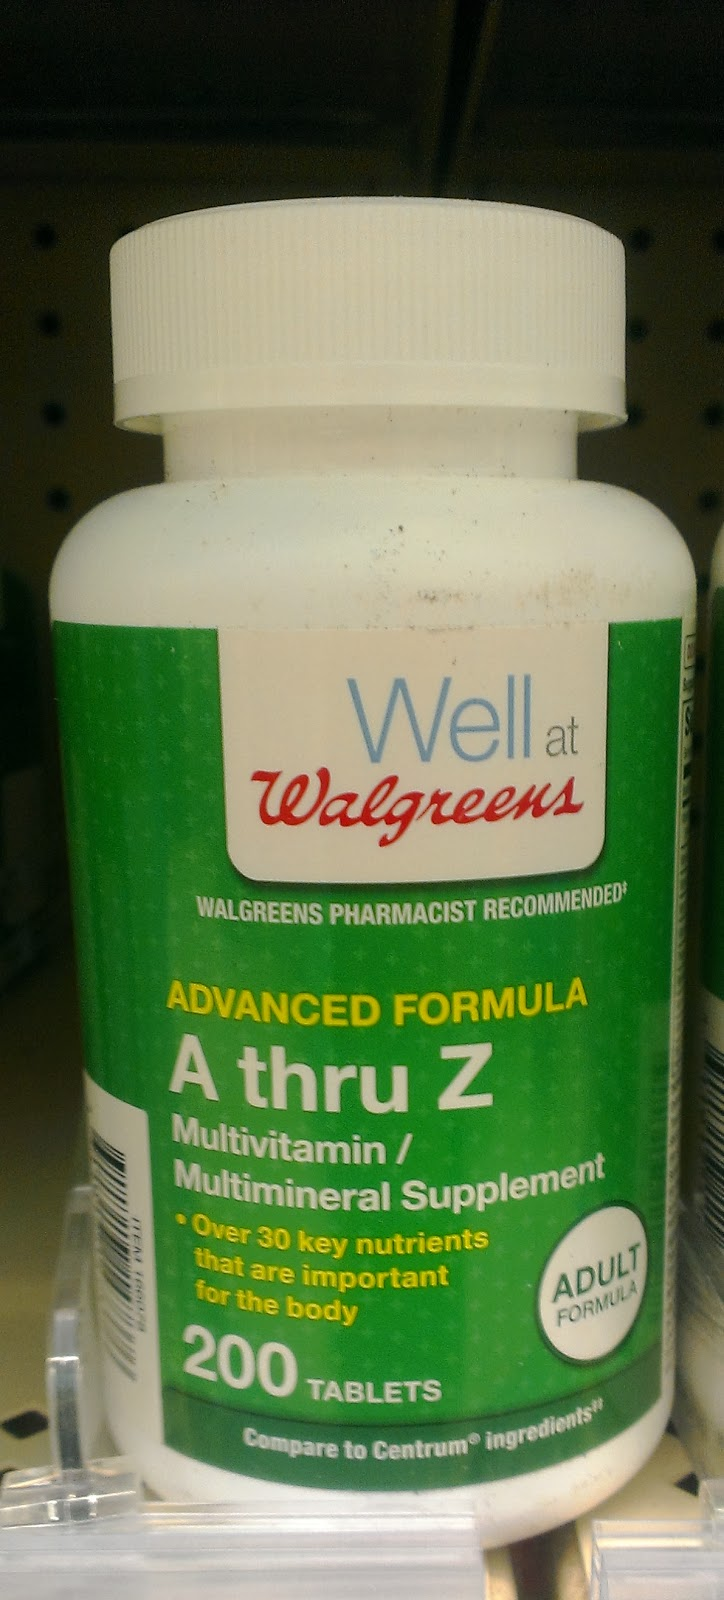 Well at Walgreens A thru Z Multivitamin